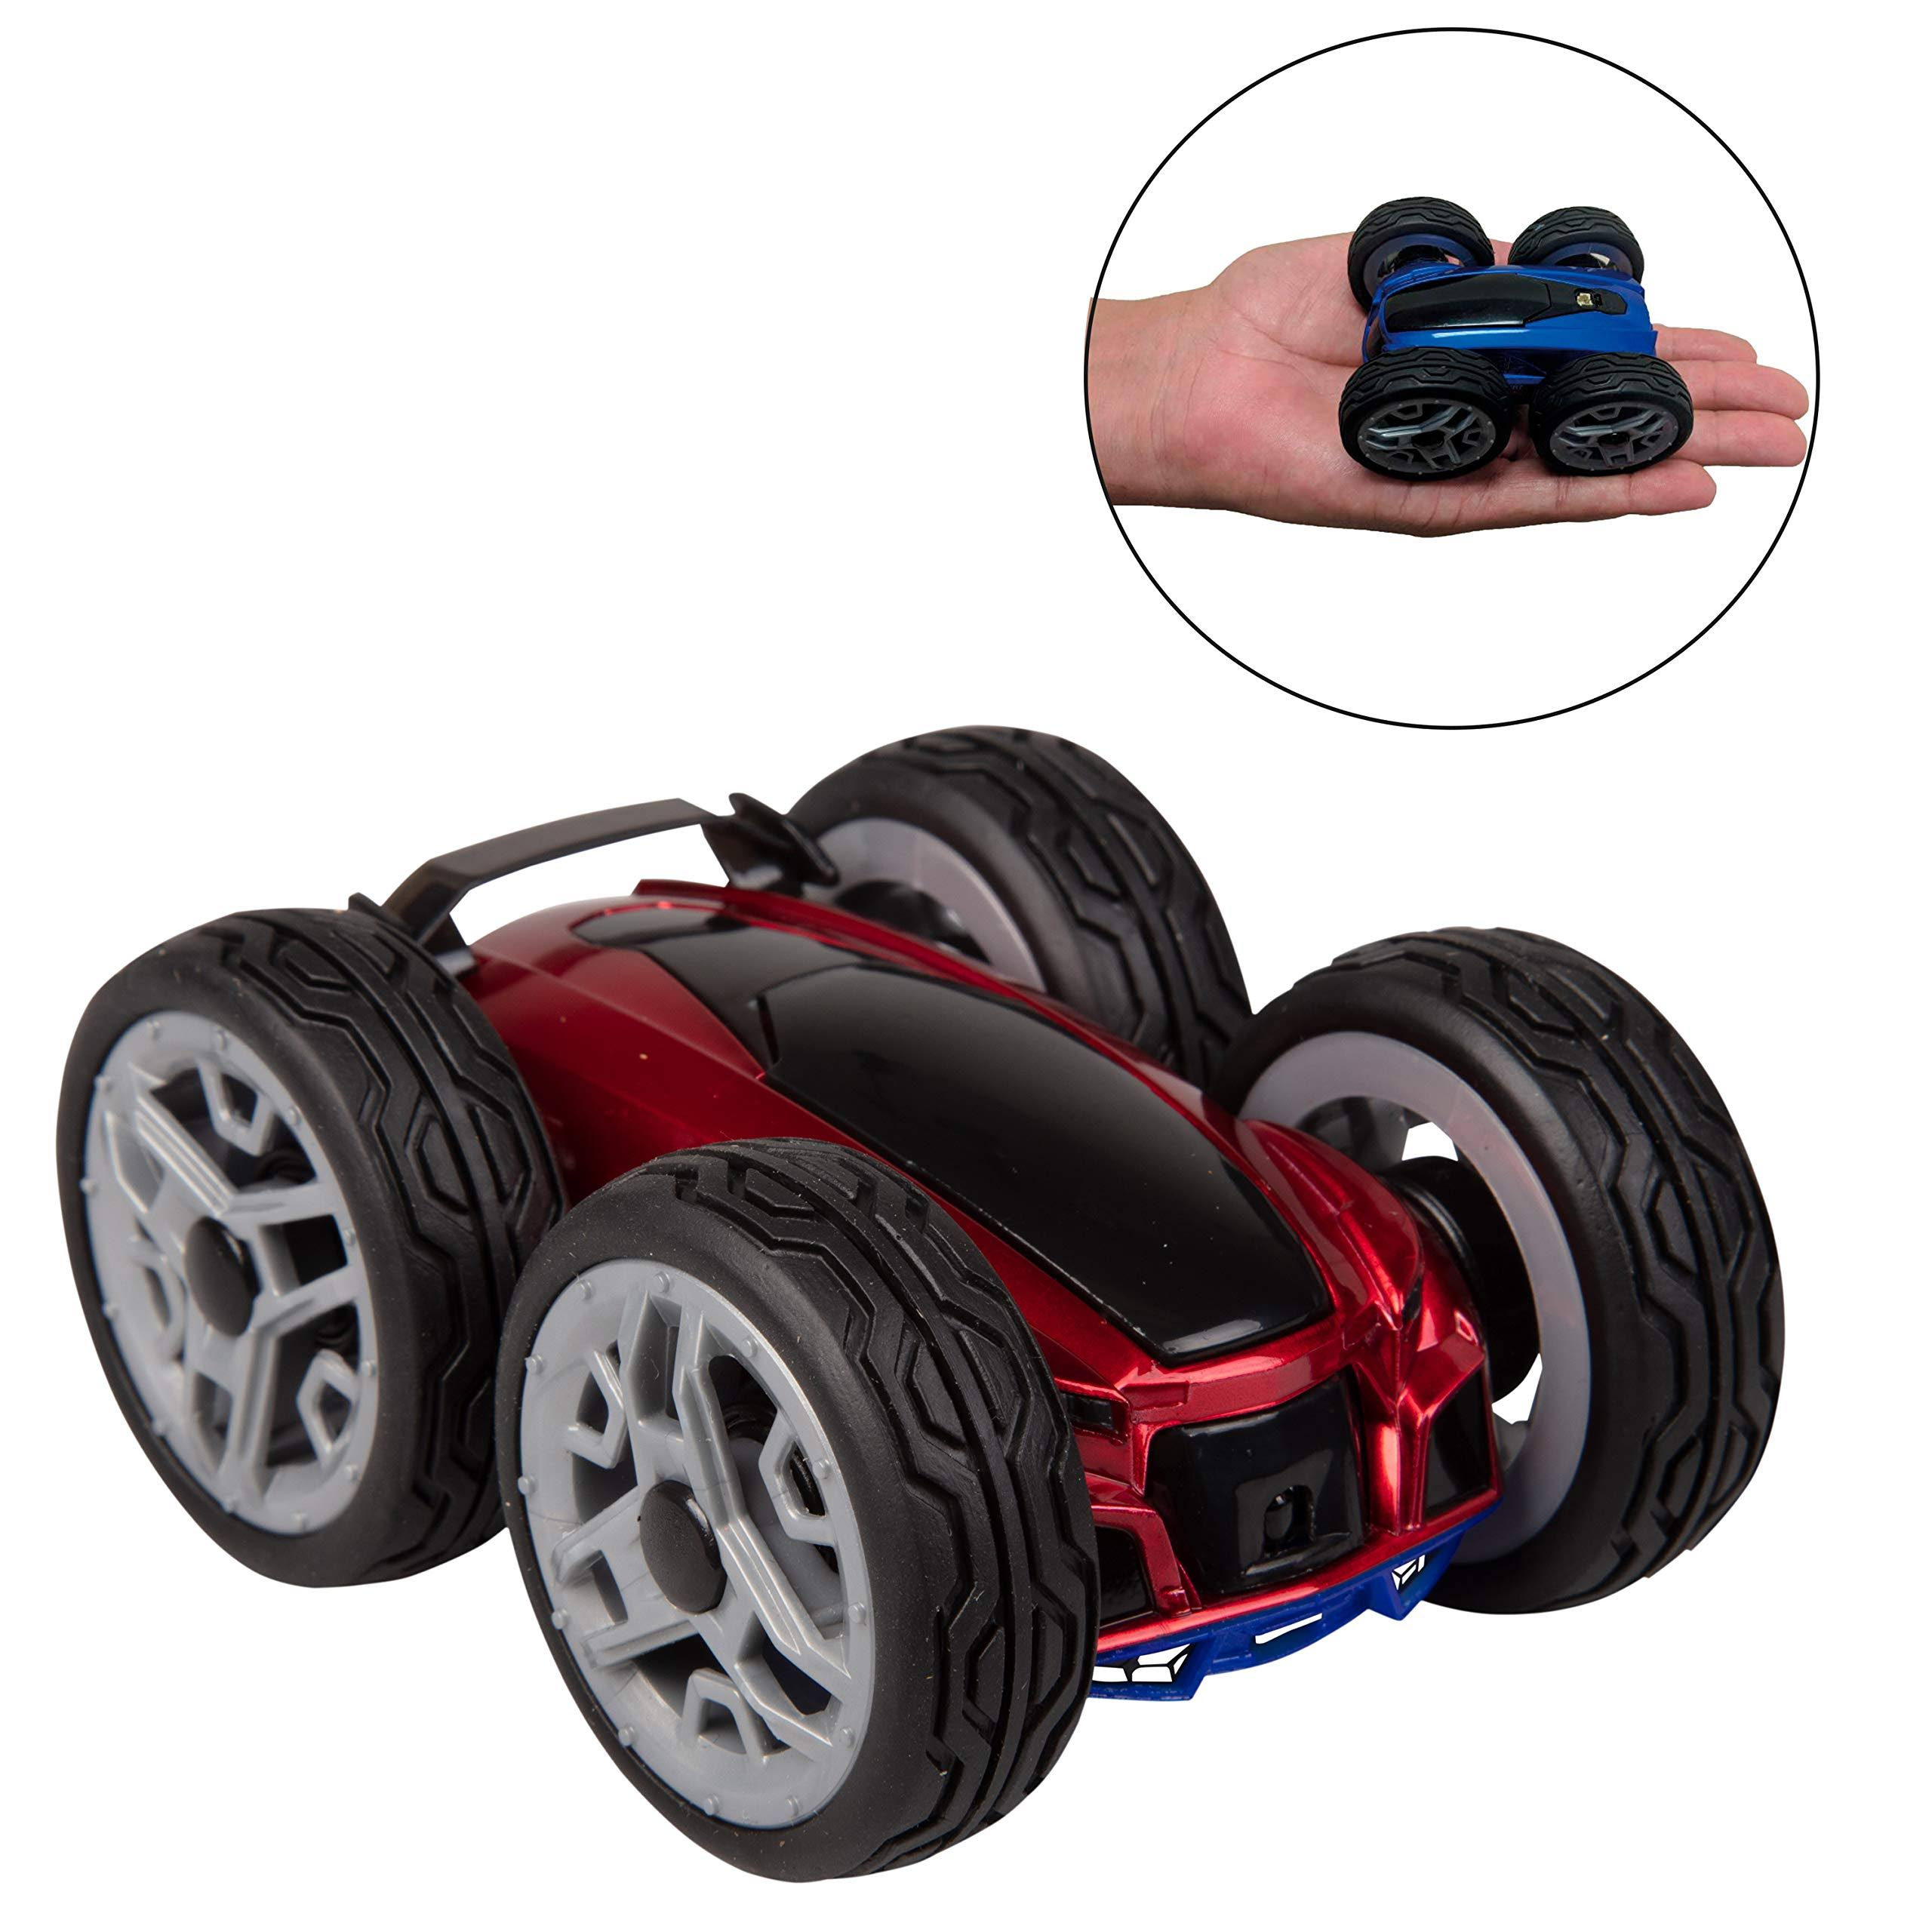 California Creations Dyno RC Insane Stunt Car - Lunatic - Remote Control Toy Car Spins and Flips - Red/Blue - Ages 6+